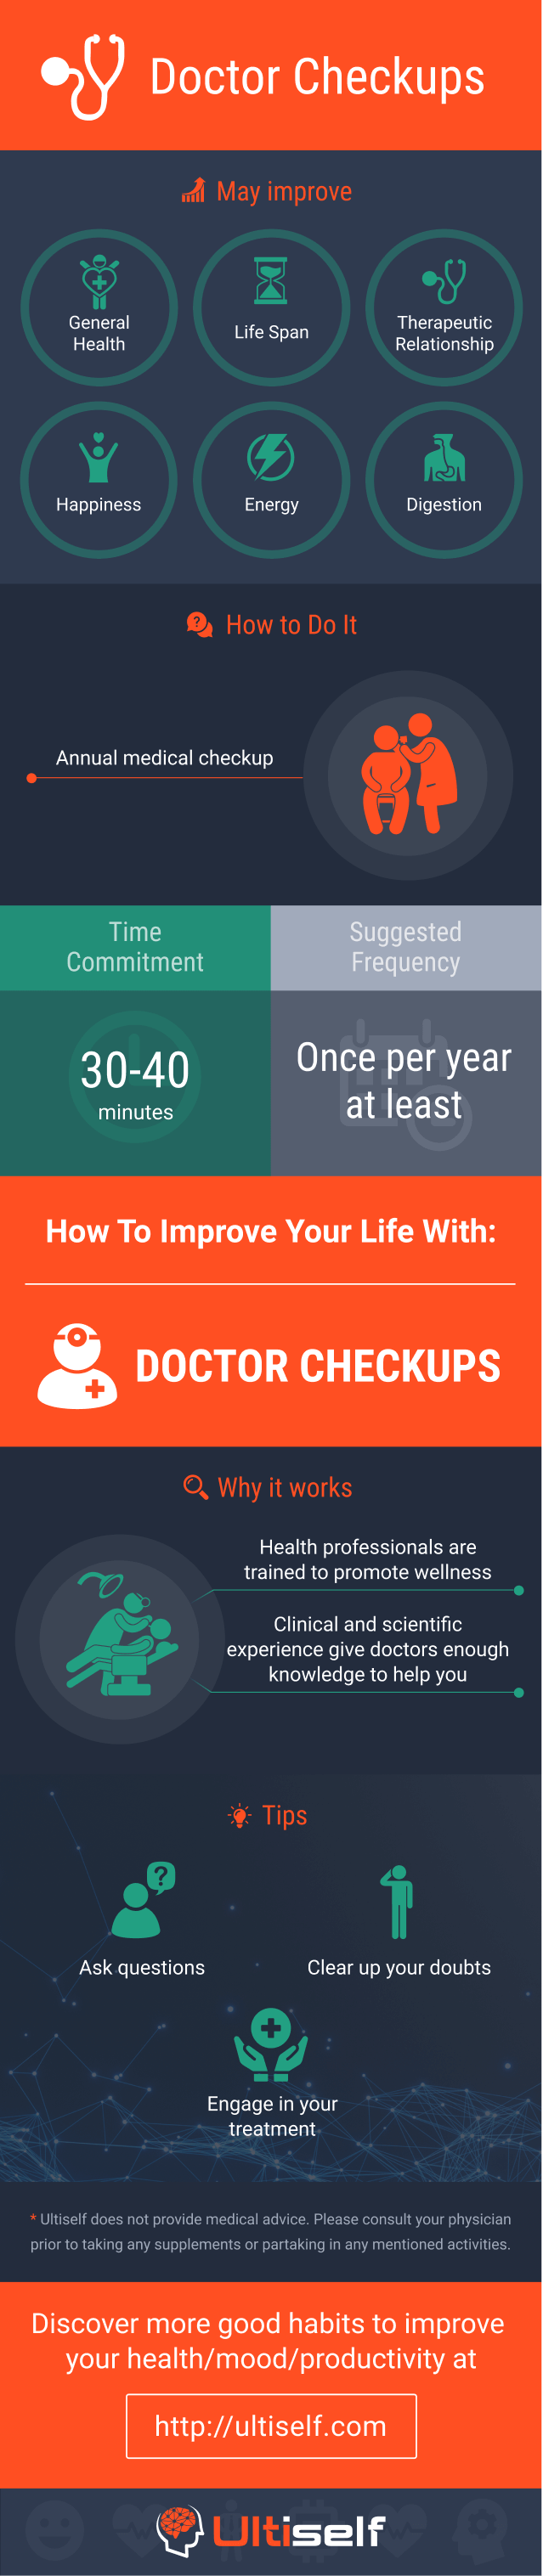 Health Checkups infographic